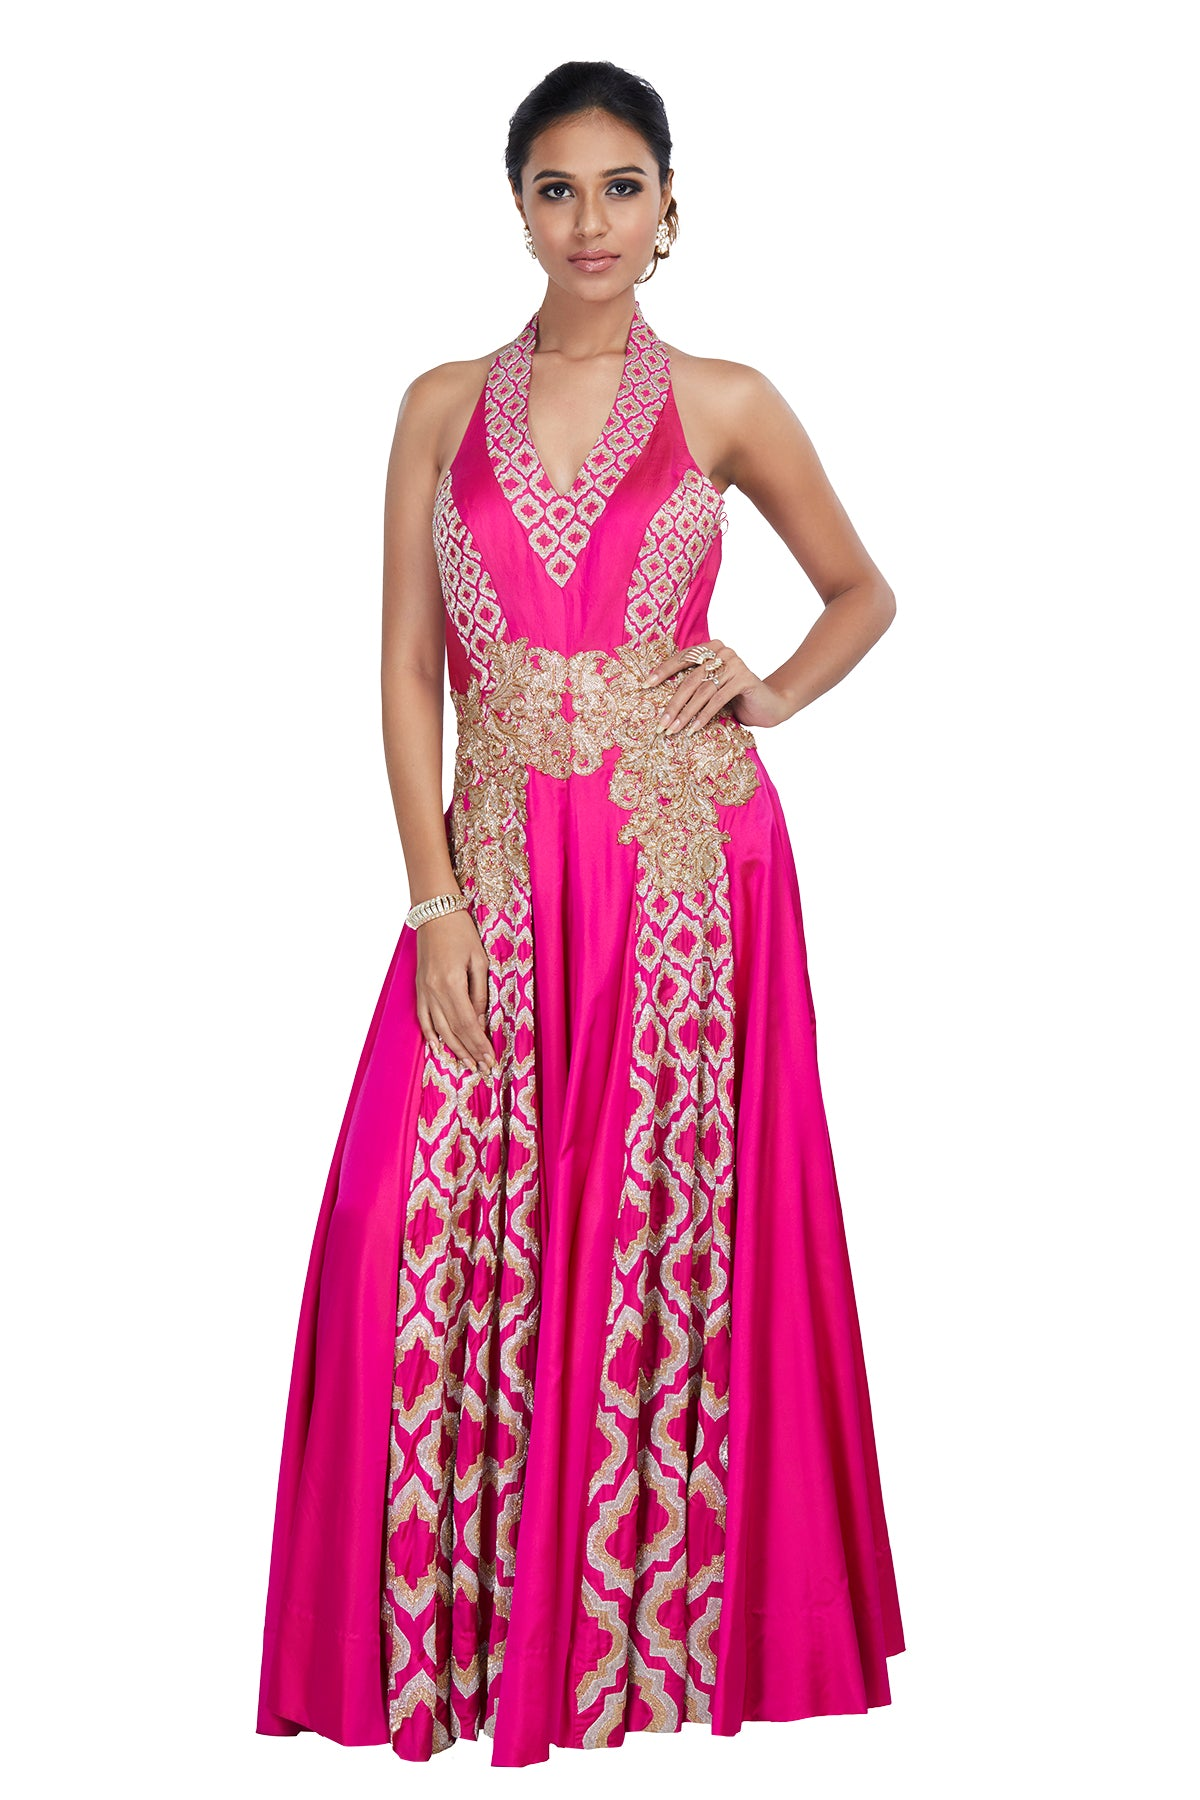 We pinky swear that this one's a keeper! Write your own Cinderella story in this pink halter two-tone silk & skin colour net down with gold & silver kardana embroidery. This one is weaved to entice wonder.